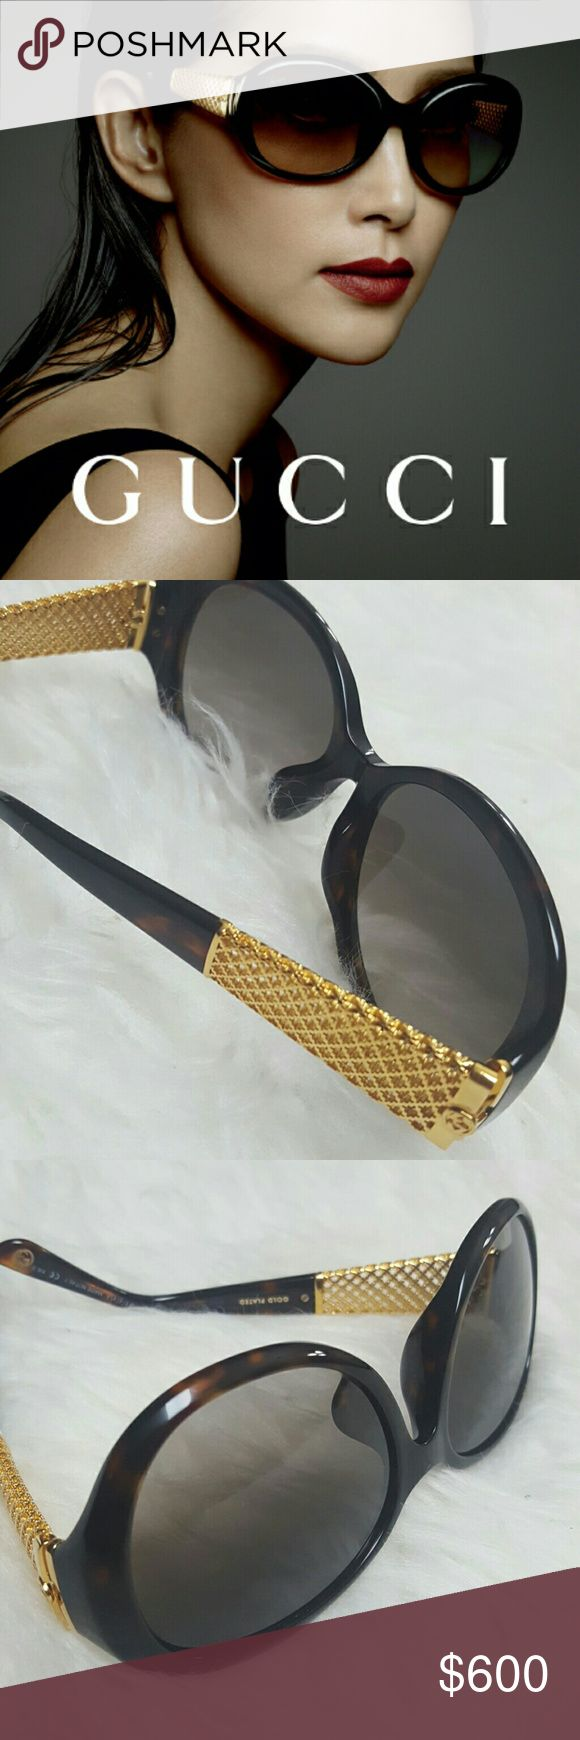 Gucci Italy Designer Gold Plated Sunglasses NEW! Gucci Designer Sunglasses in Its Iconic Diamantissima Gold Plated Mesh Temples! An Absolute Head Turner in Its Stunning GG Iconic Logo on Each Temple!  Crafted with Highest Quality with Tortoise Frame and Brown Gradient Lenses with Maximum UV Protection!  Made in Italy! Gucci World Renowned Designer Brand in Its Bold Design, This Pair is Sure to Have Made it Legendary and Highly Desired! GG 3706/F/S  58 17 130, Comes with Original Case and…